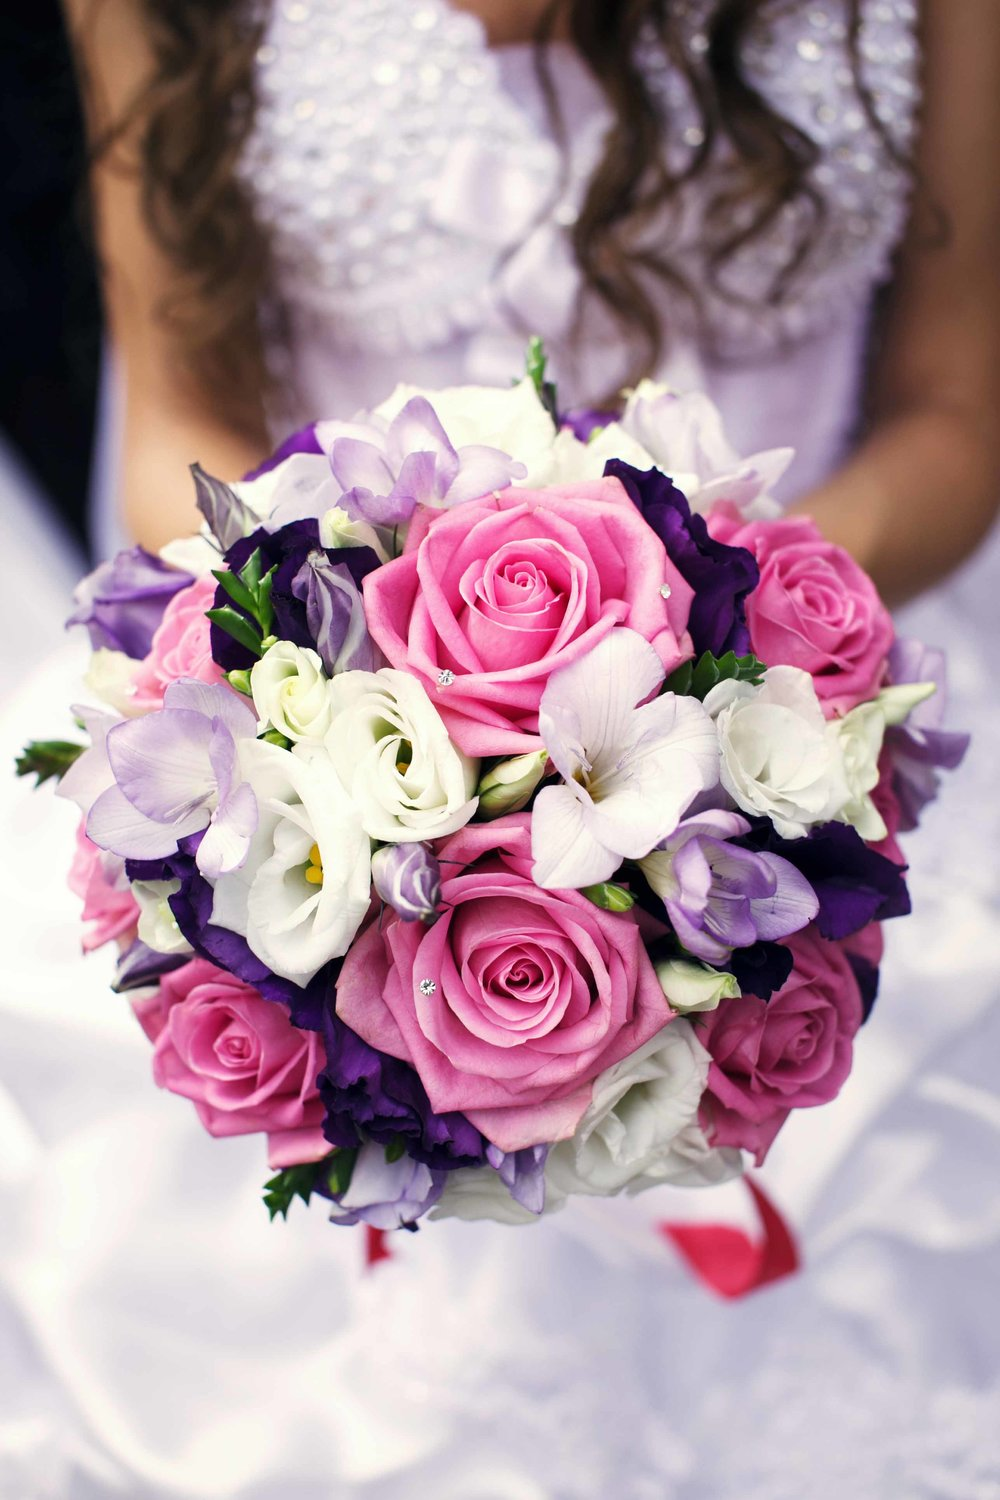 It's fast, easy, and free to deliver your bouquet for flower preservation from the Thief River Falls MN area. Get started today! Call 701-400-6162.